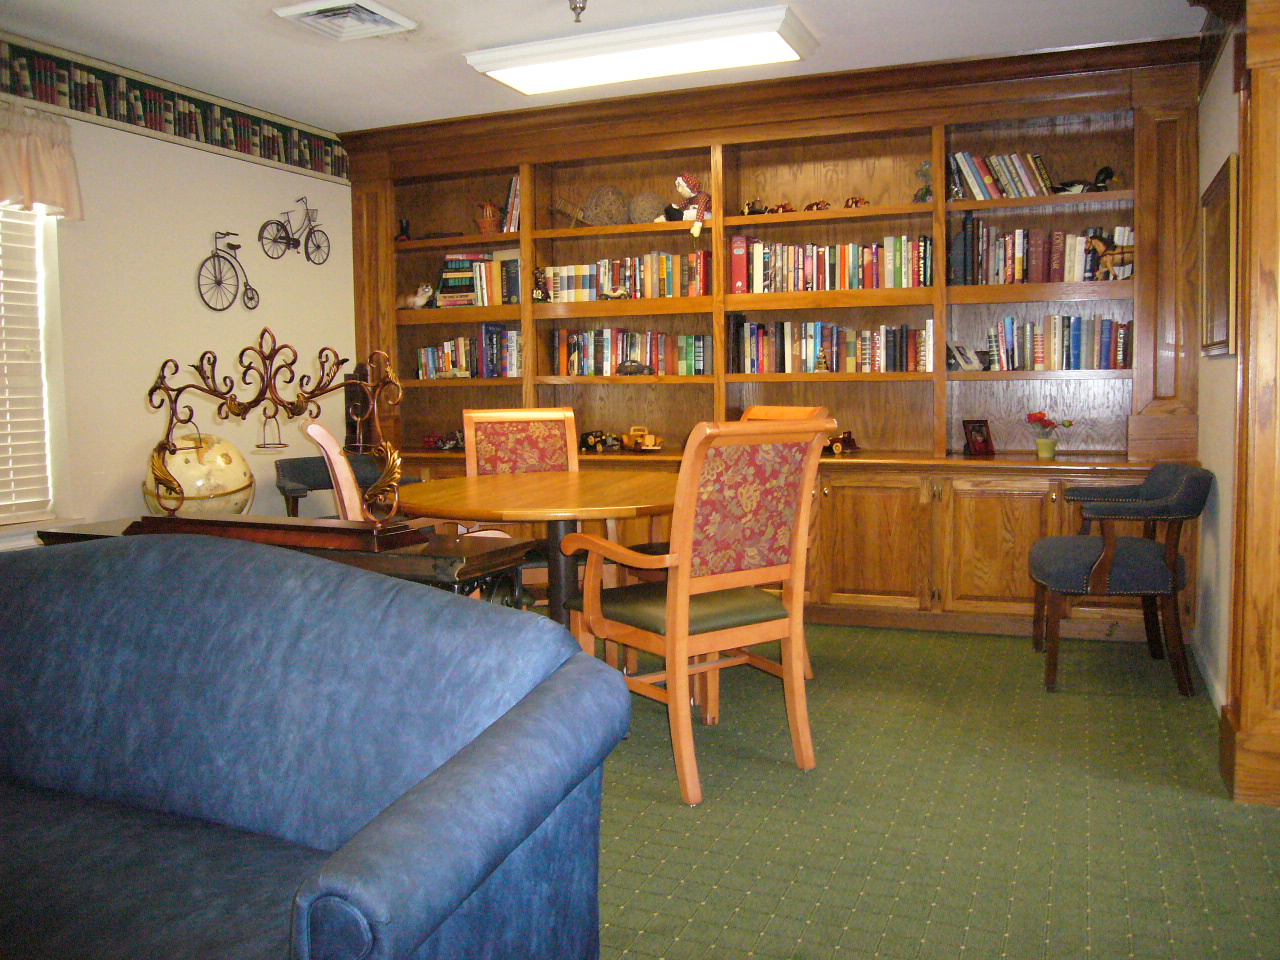 Elmcroft of Florence, SC - Library